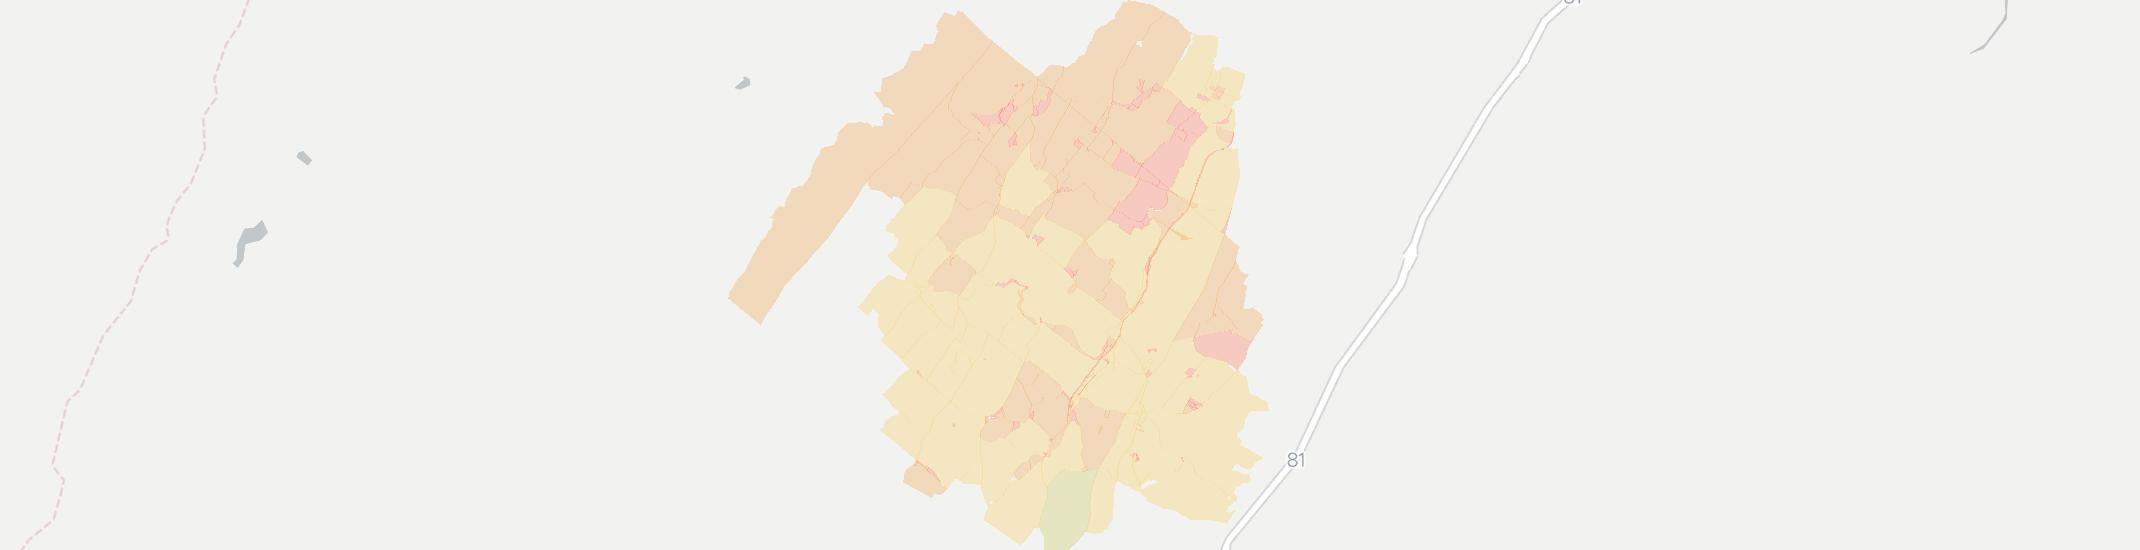 Linville Internet Competition Map. Click for interactive map.